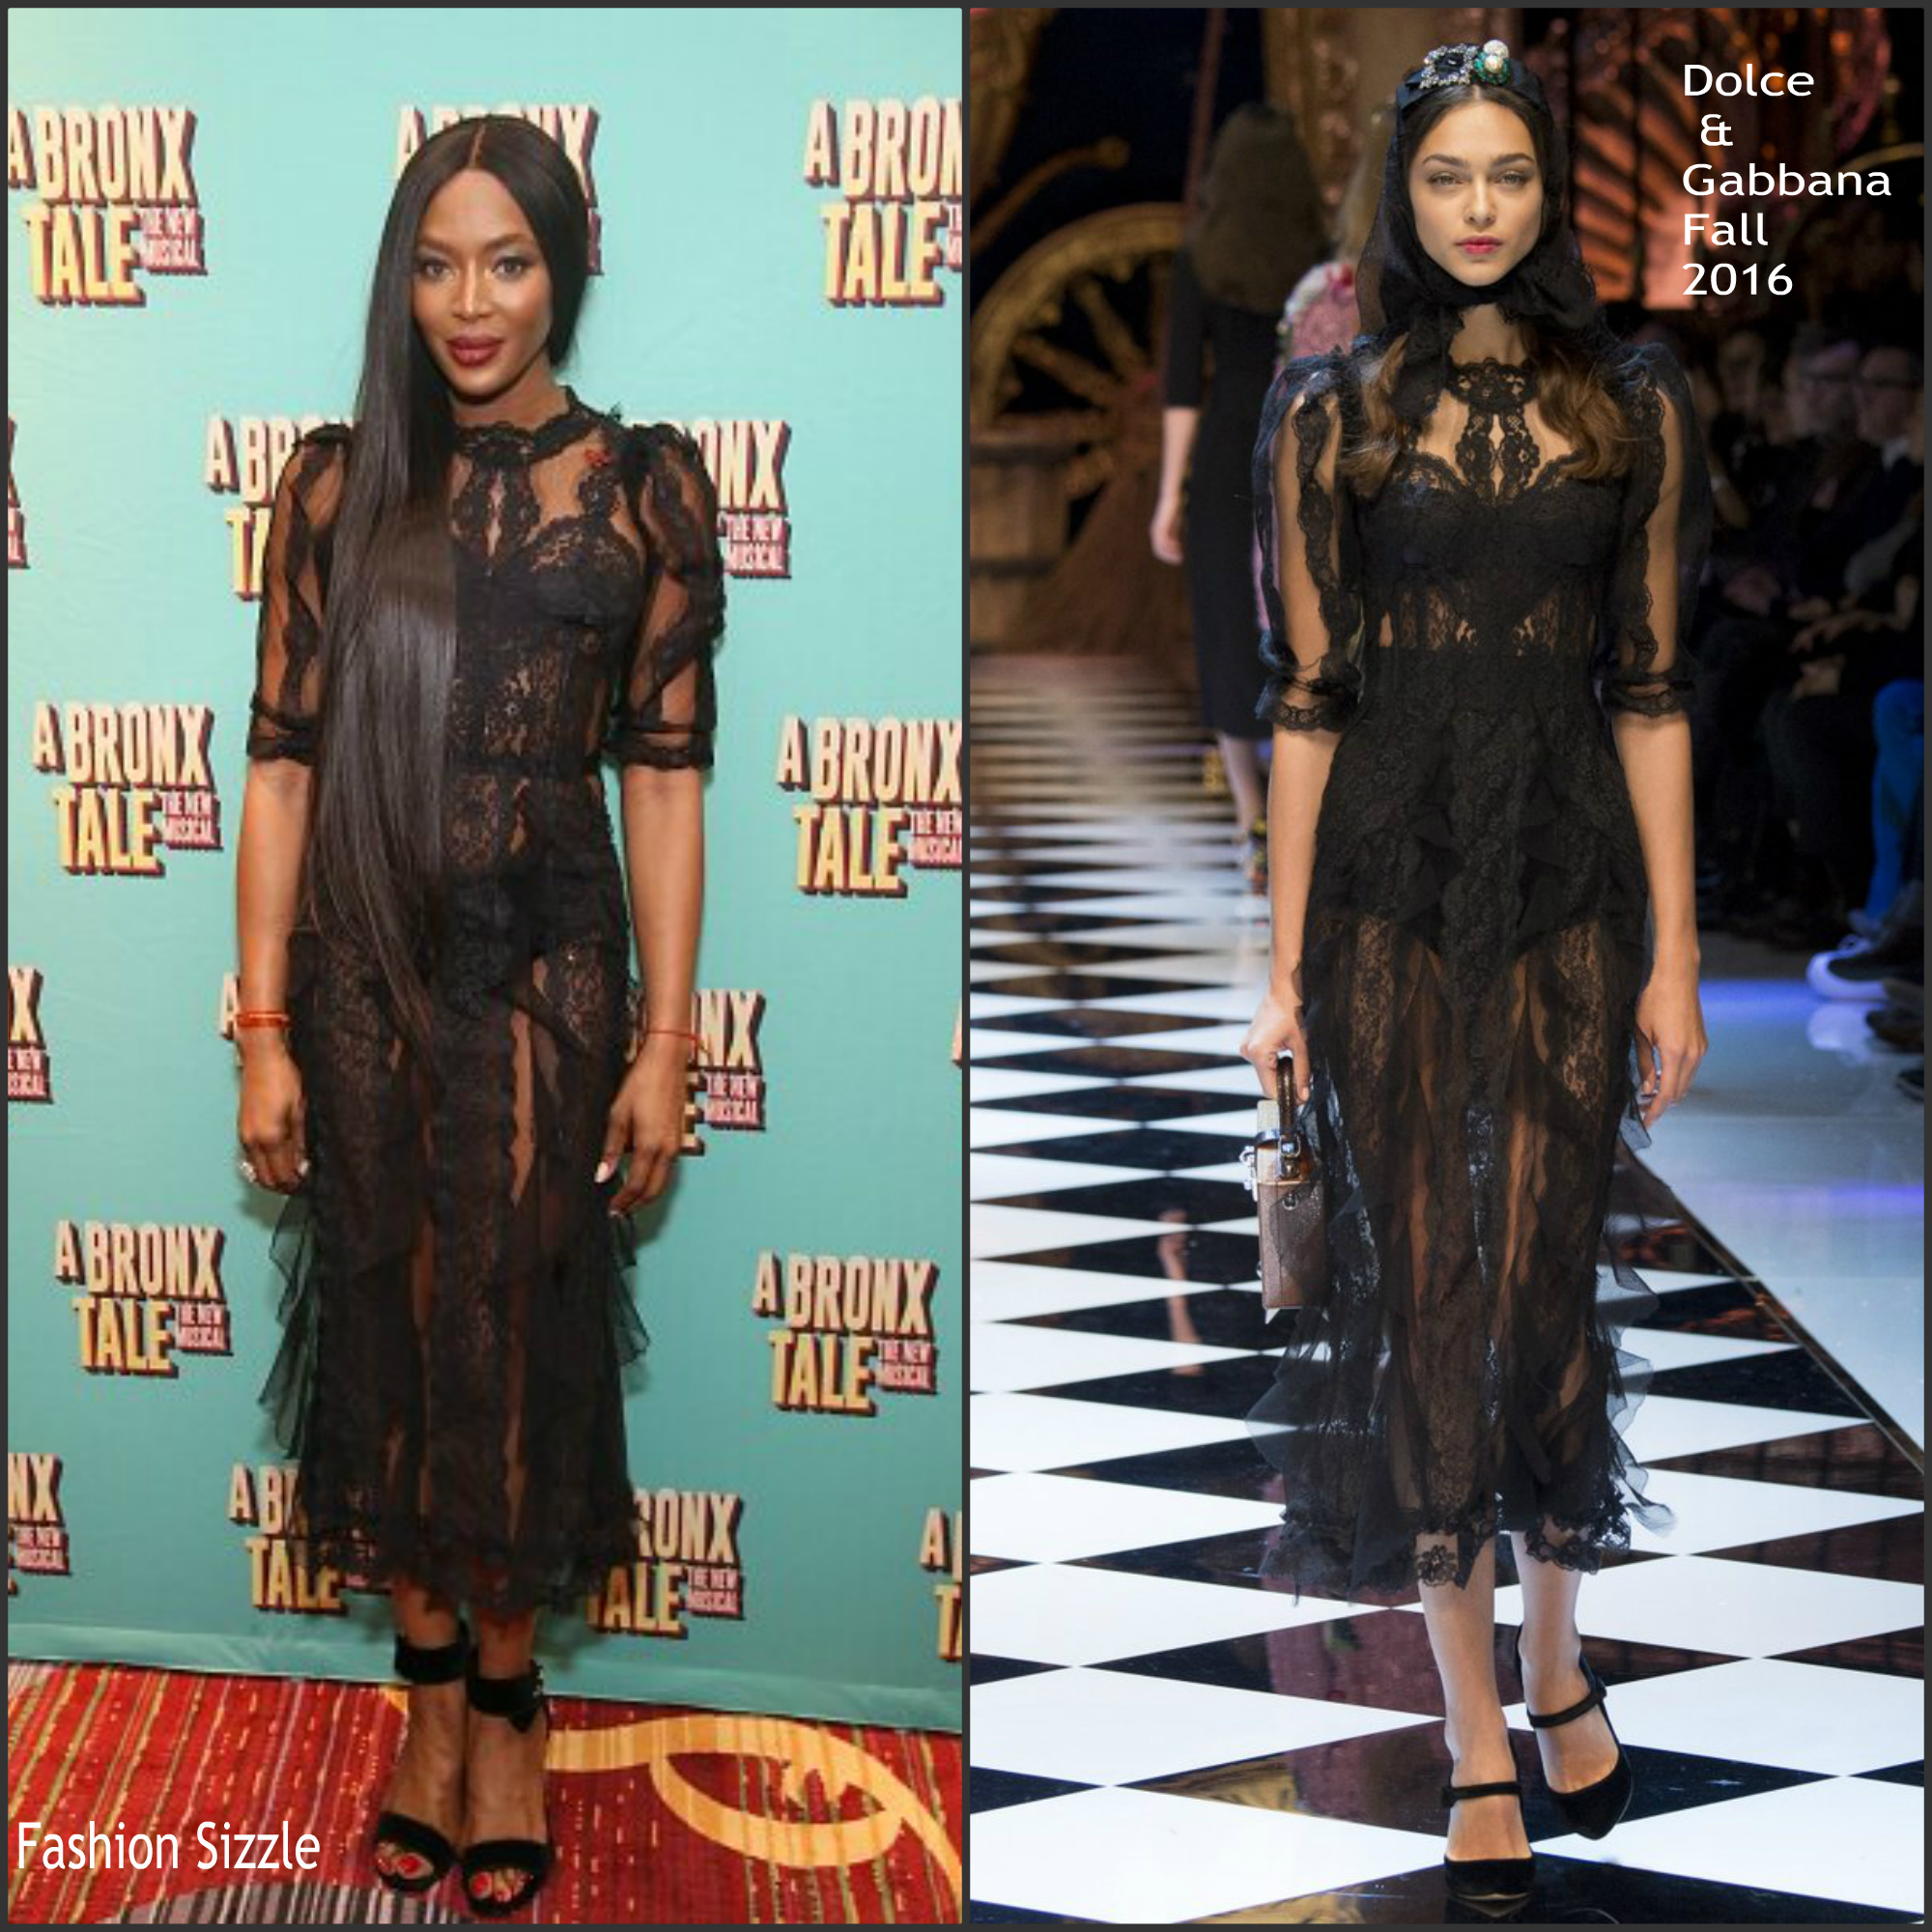 naomi-campbell-in-dolce-gabbana-at-a-bronx-tale-musical-broadway-opening-night